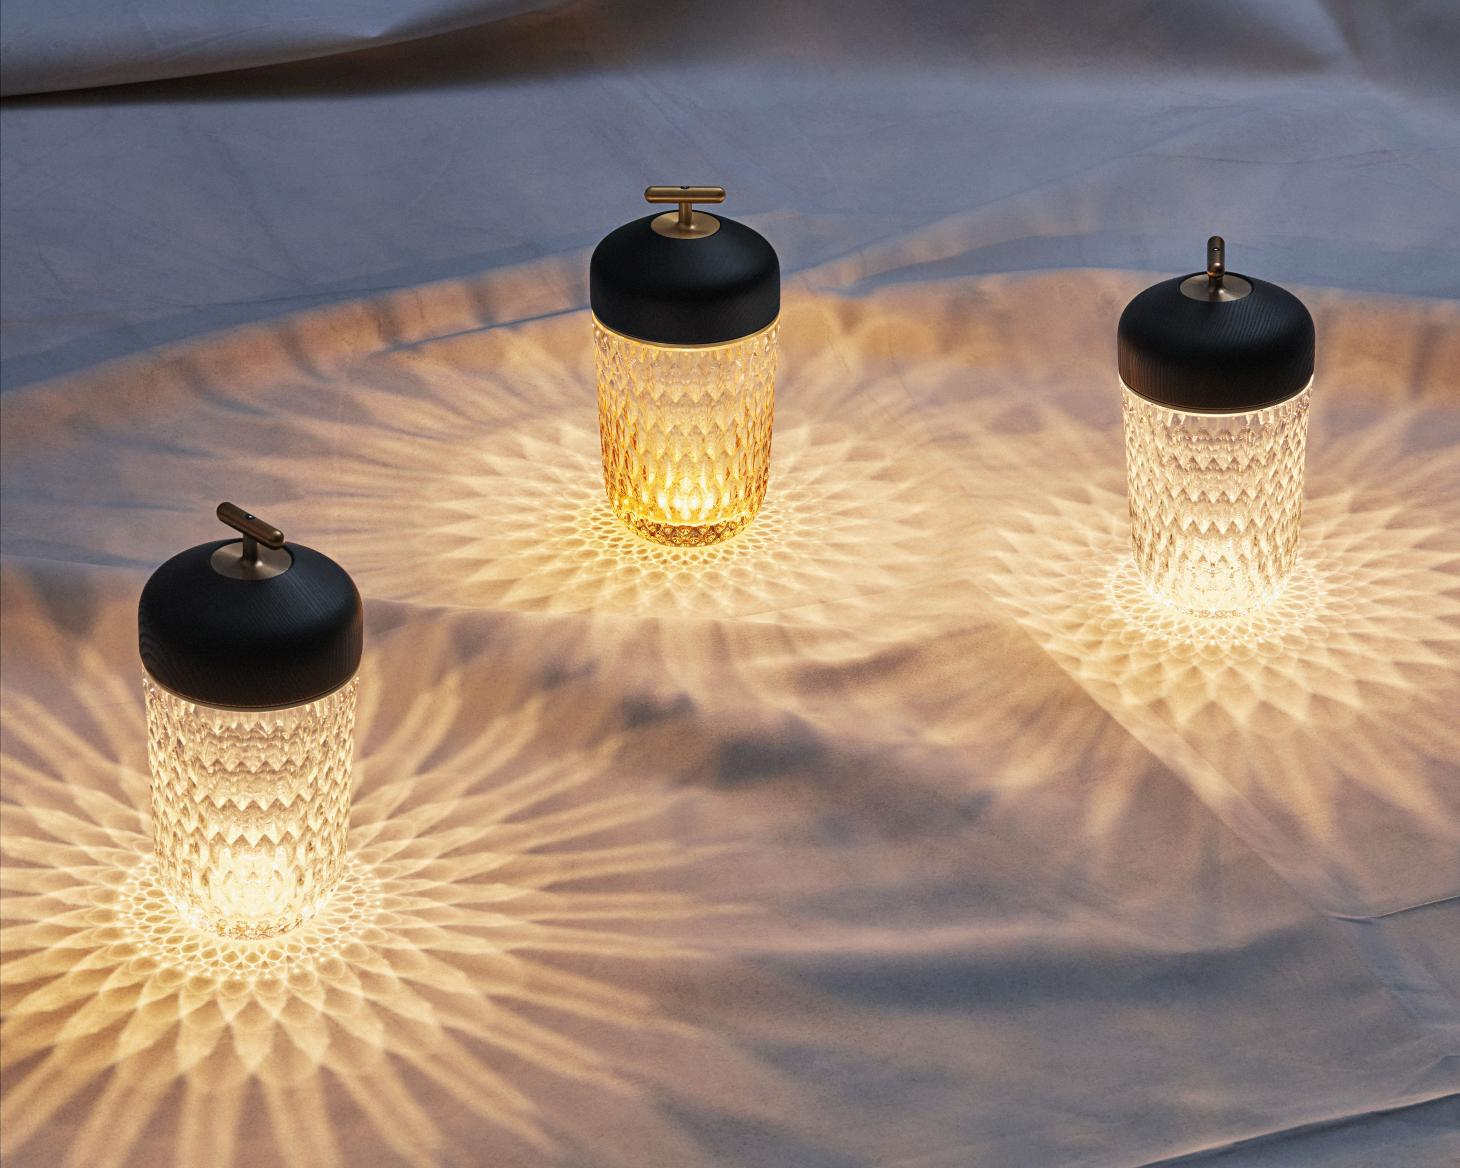 Three portable lamps in textured crystal, casting patterned lights and shadows on the surface below